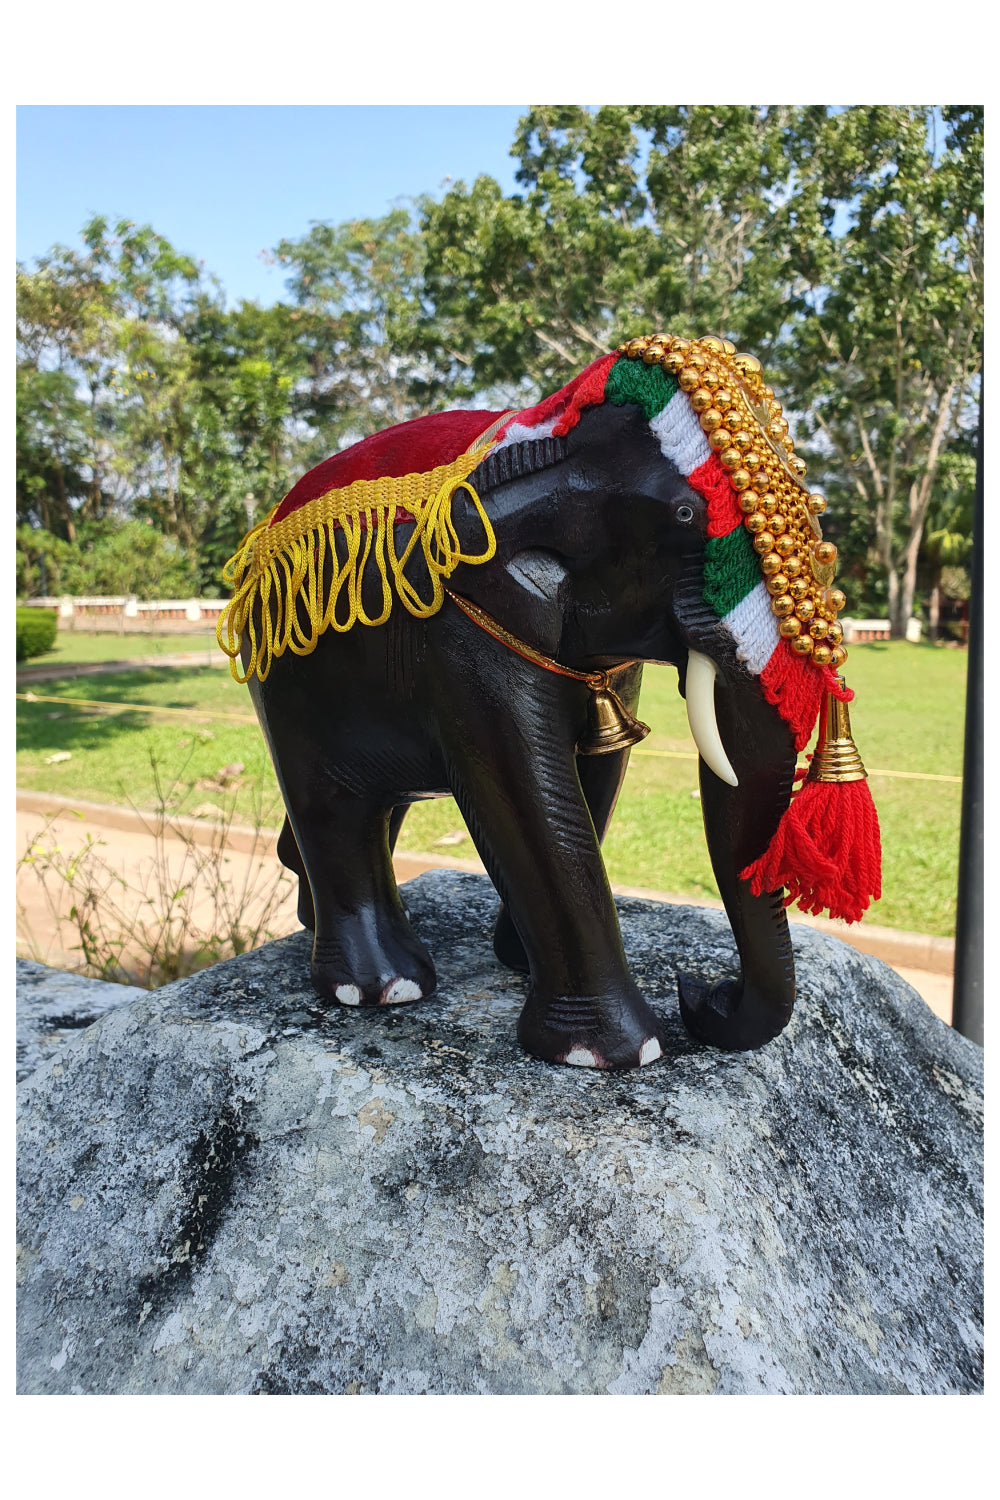 Southloom Handmade Temple Elephant Handicraft (Carved from Mahogany Wood) 8 Inches